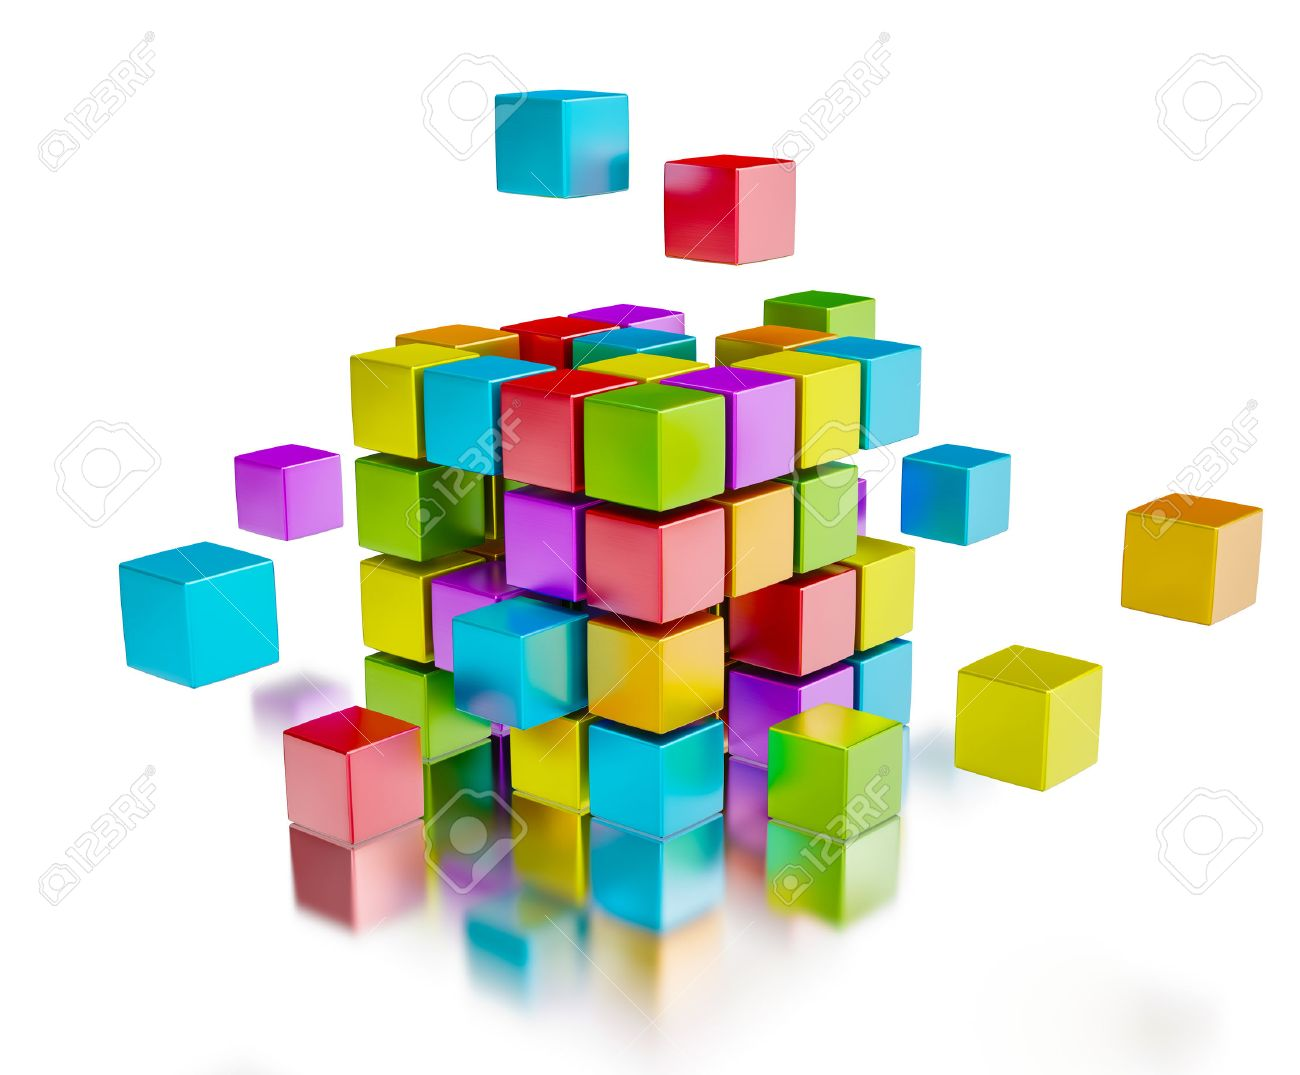 Business team teamwork collaboration concept - colorful color cubes assembling into cubic structure isolated on white with reflection - 48769508